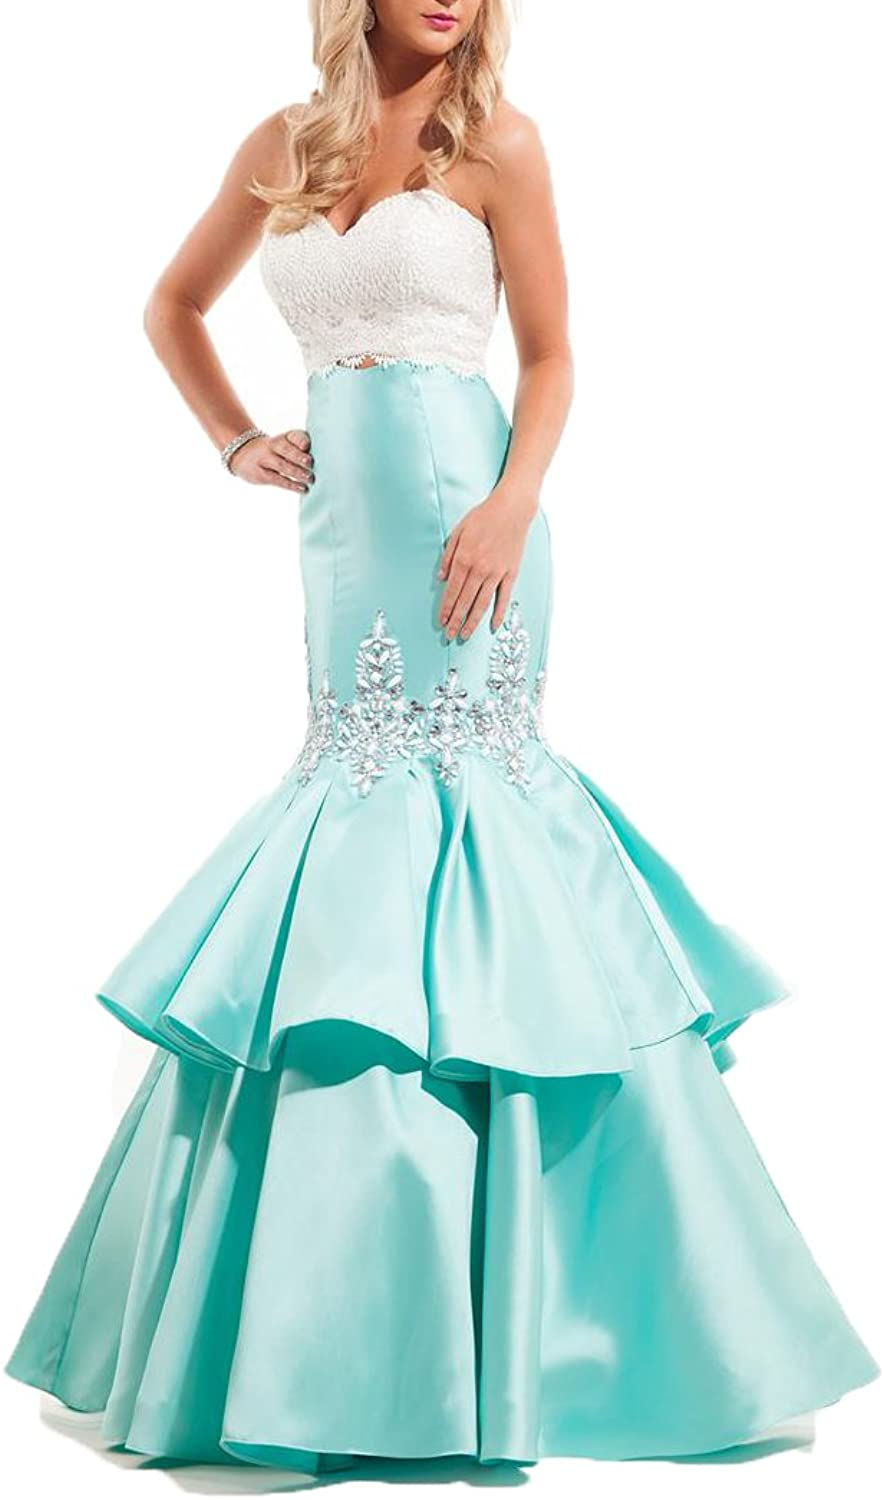 Ellenhouse Women's Long Sweetheart Beaded Mermaid Evening Prom Party Dress EL235